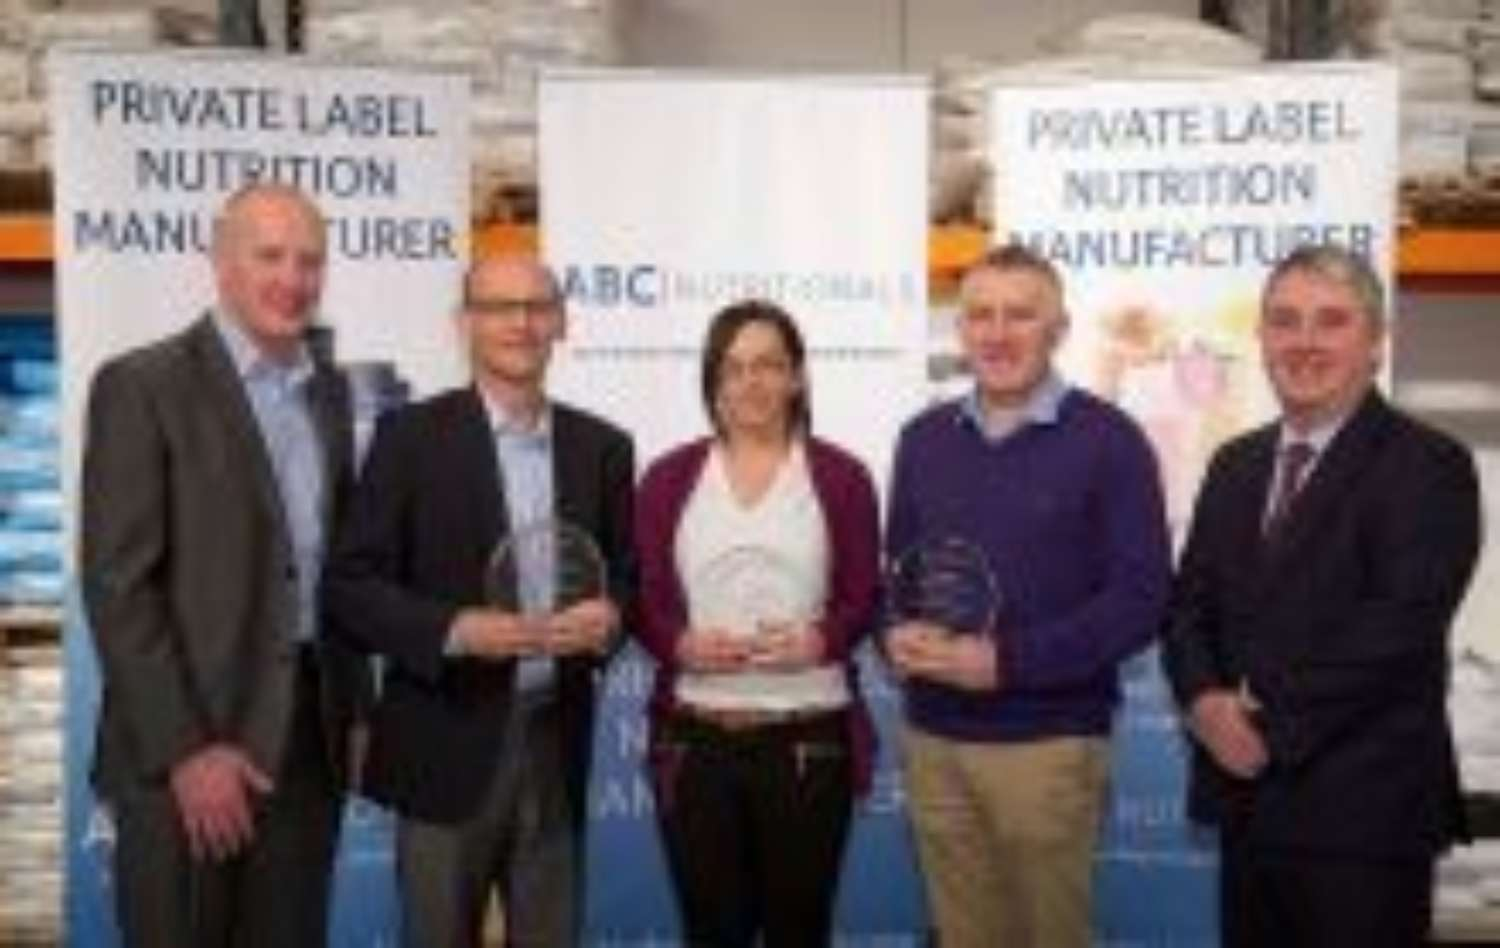 Inter Trade Ireland Award for Co Clare based ABC Nutrition Ltd